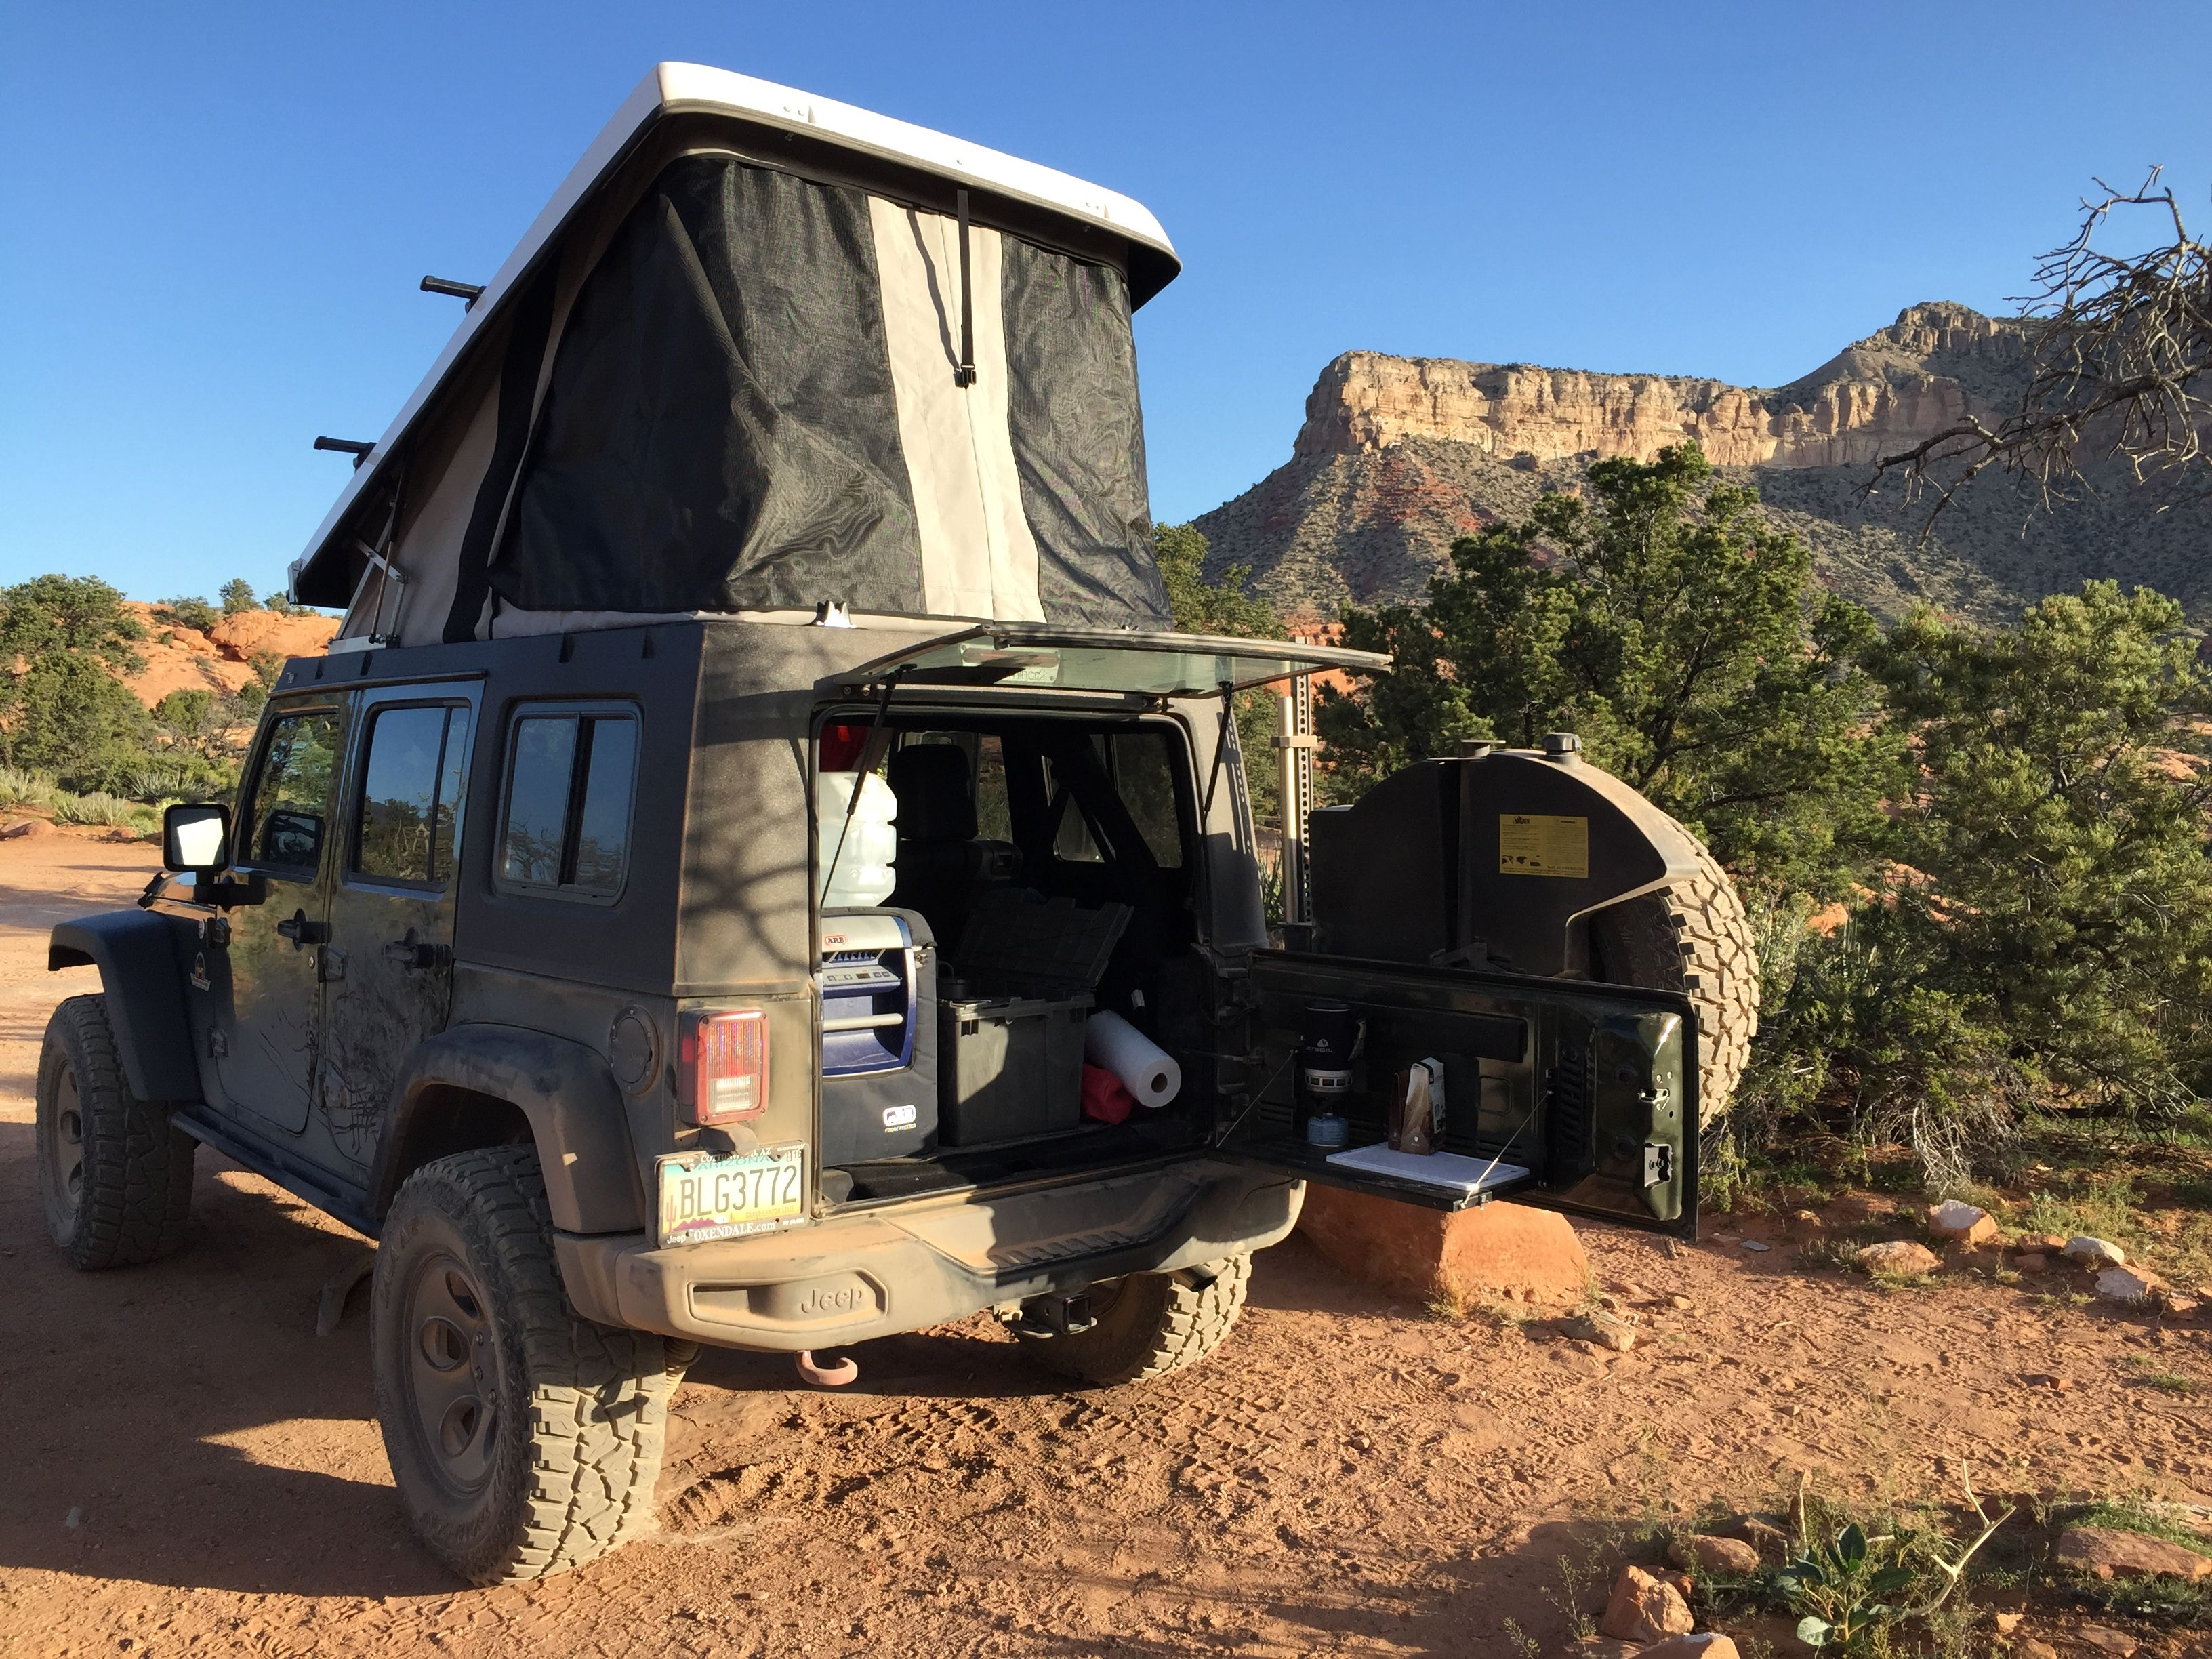 Camping With The Ursa Minor Rooftop Tent On A Jeep Wrangler At